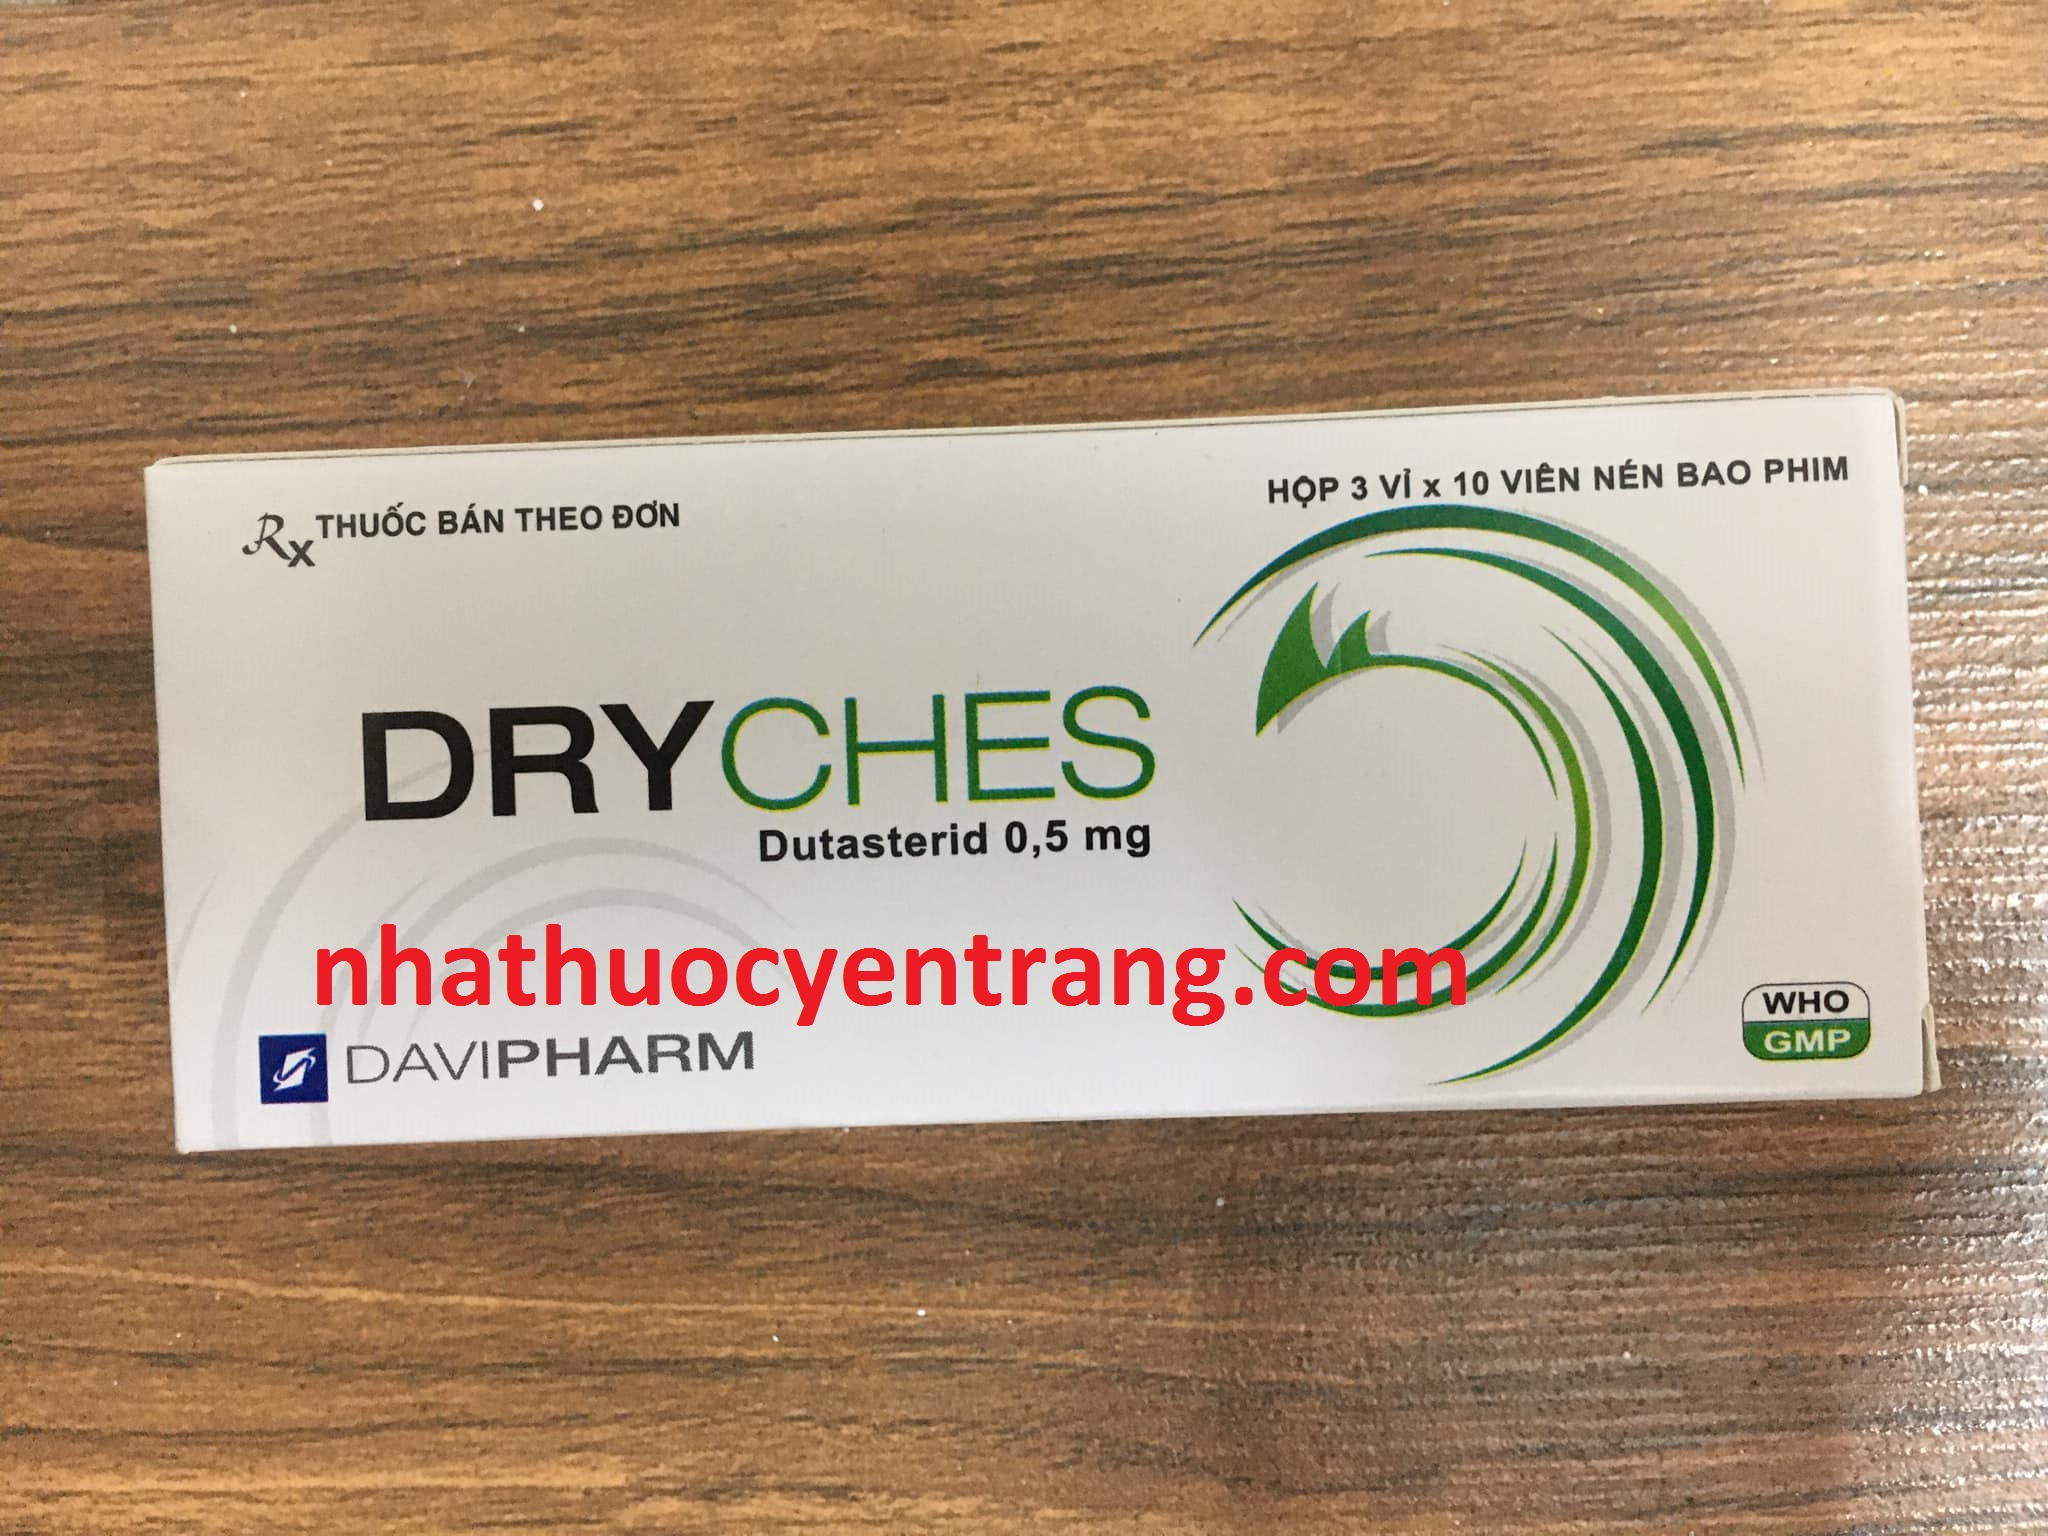 Dryches 0.5mg